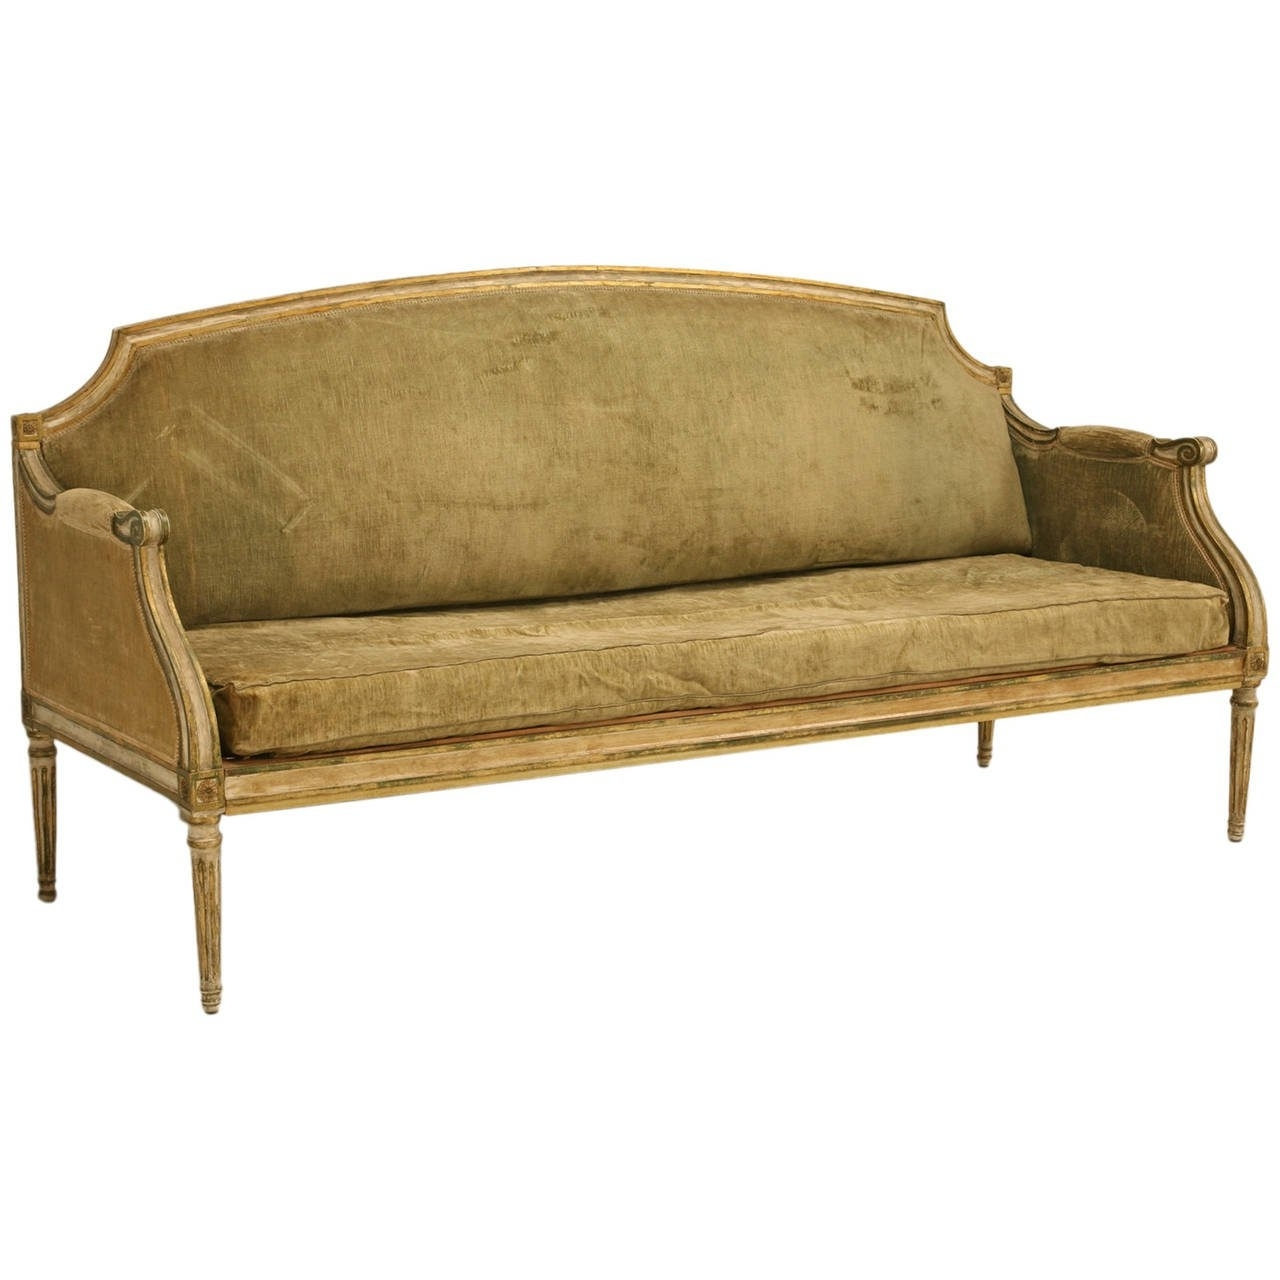 Recent Xvi Style Antique Sofa In Incredible Original Paint At 1Stdibs Pertaining To Antique Sofas (View 15 of 20)